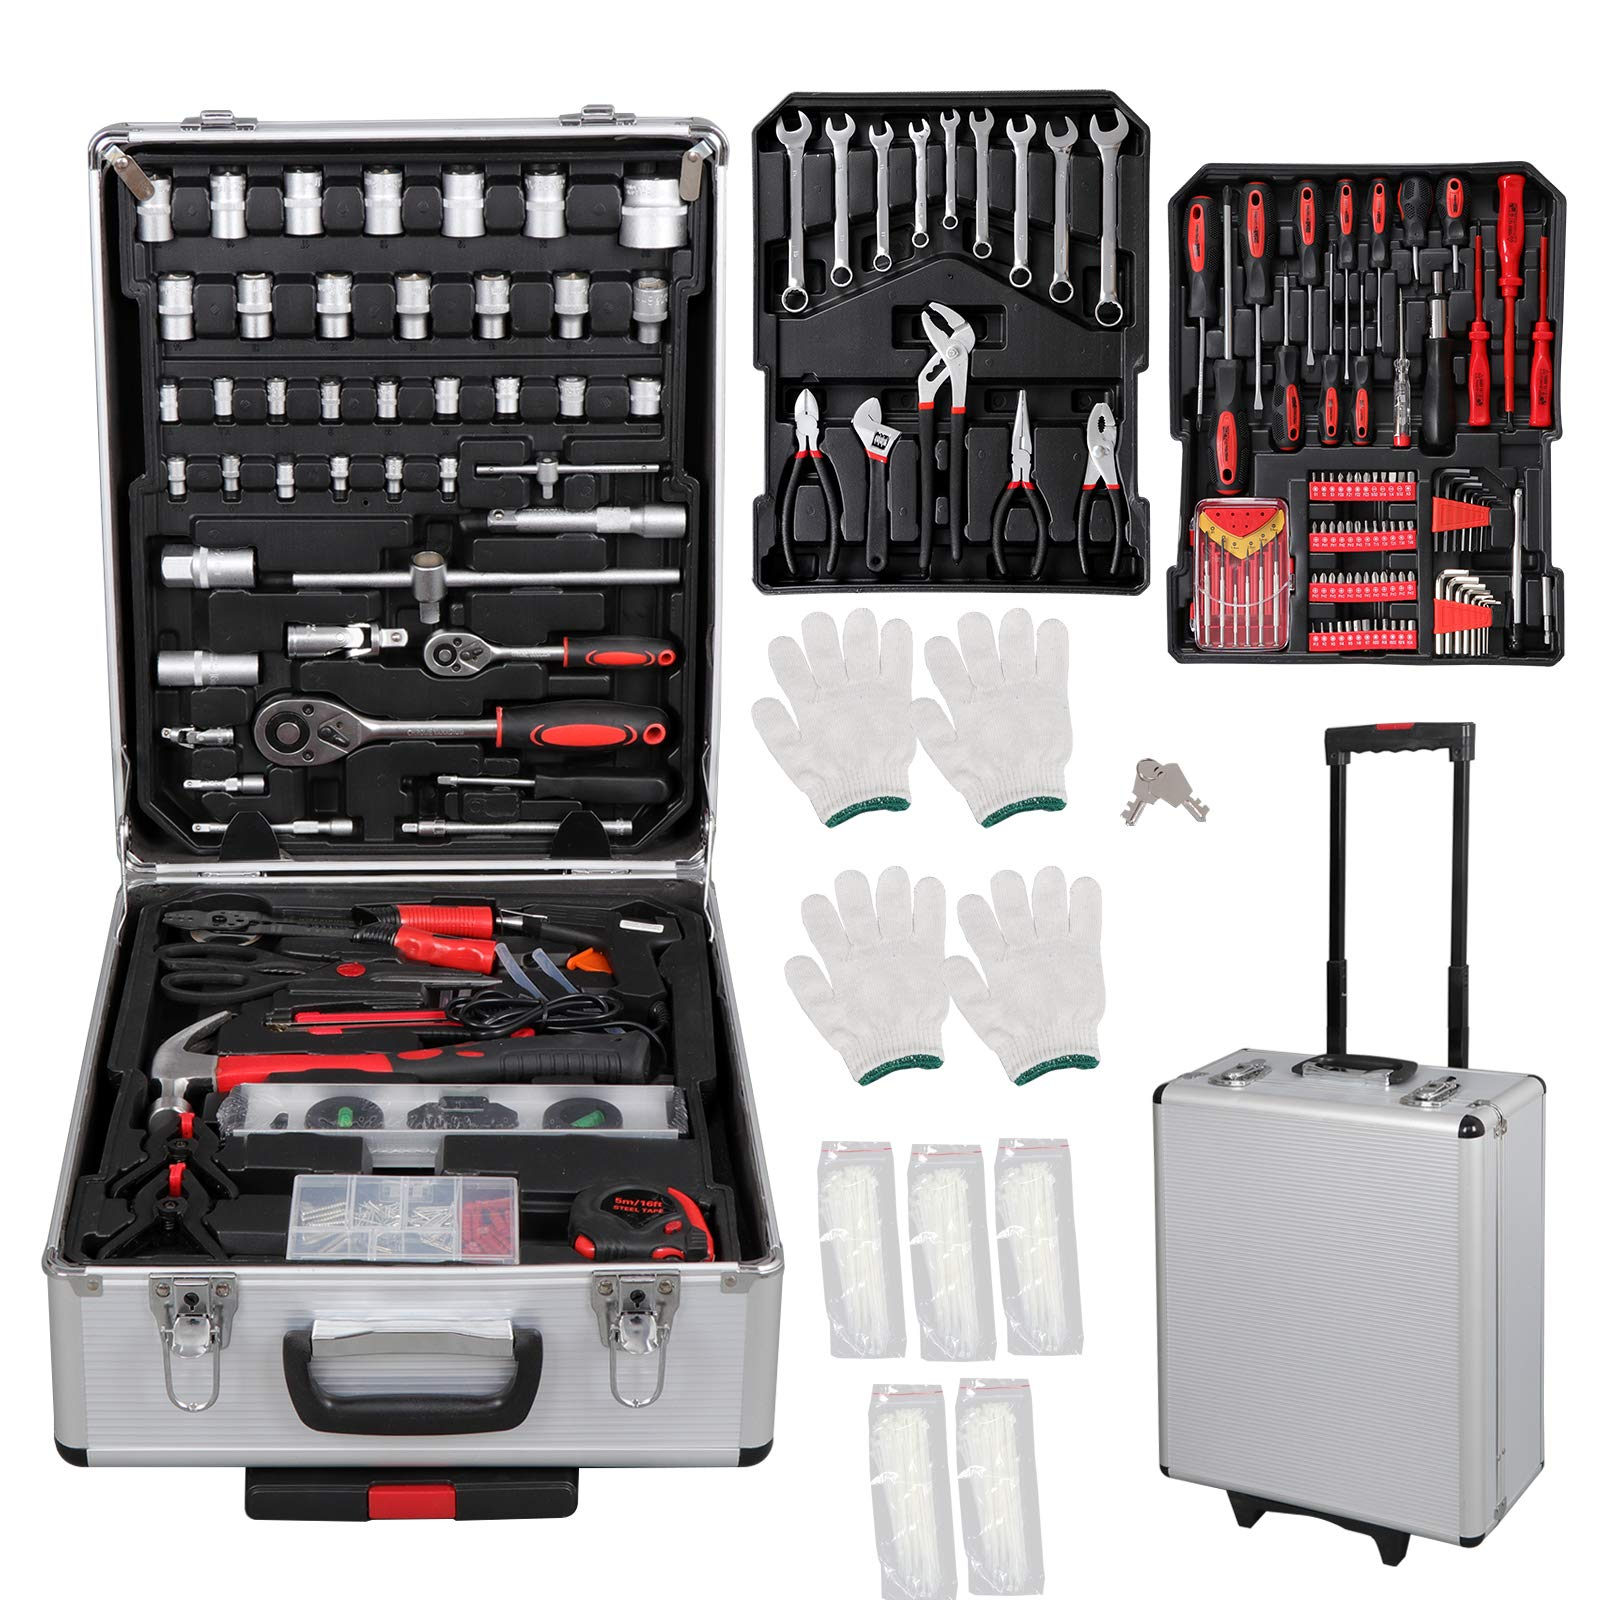 F2C 799-Piece Pro/Home DIY Mechanics Hand Tool Kit Set Auto General Repair Tools W/Aluminum Portable Trolley Storage Wheeled Case Tool Chest Box Organizer